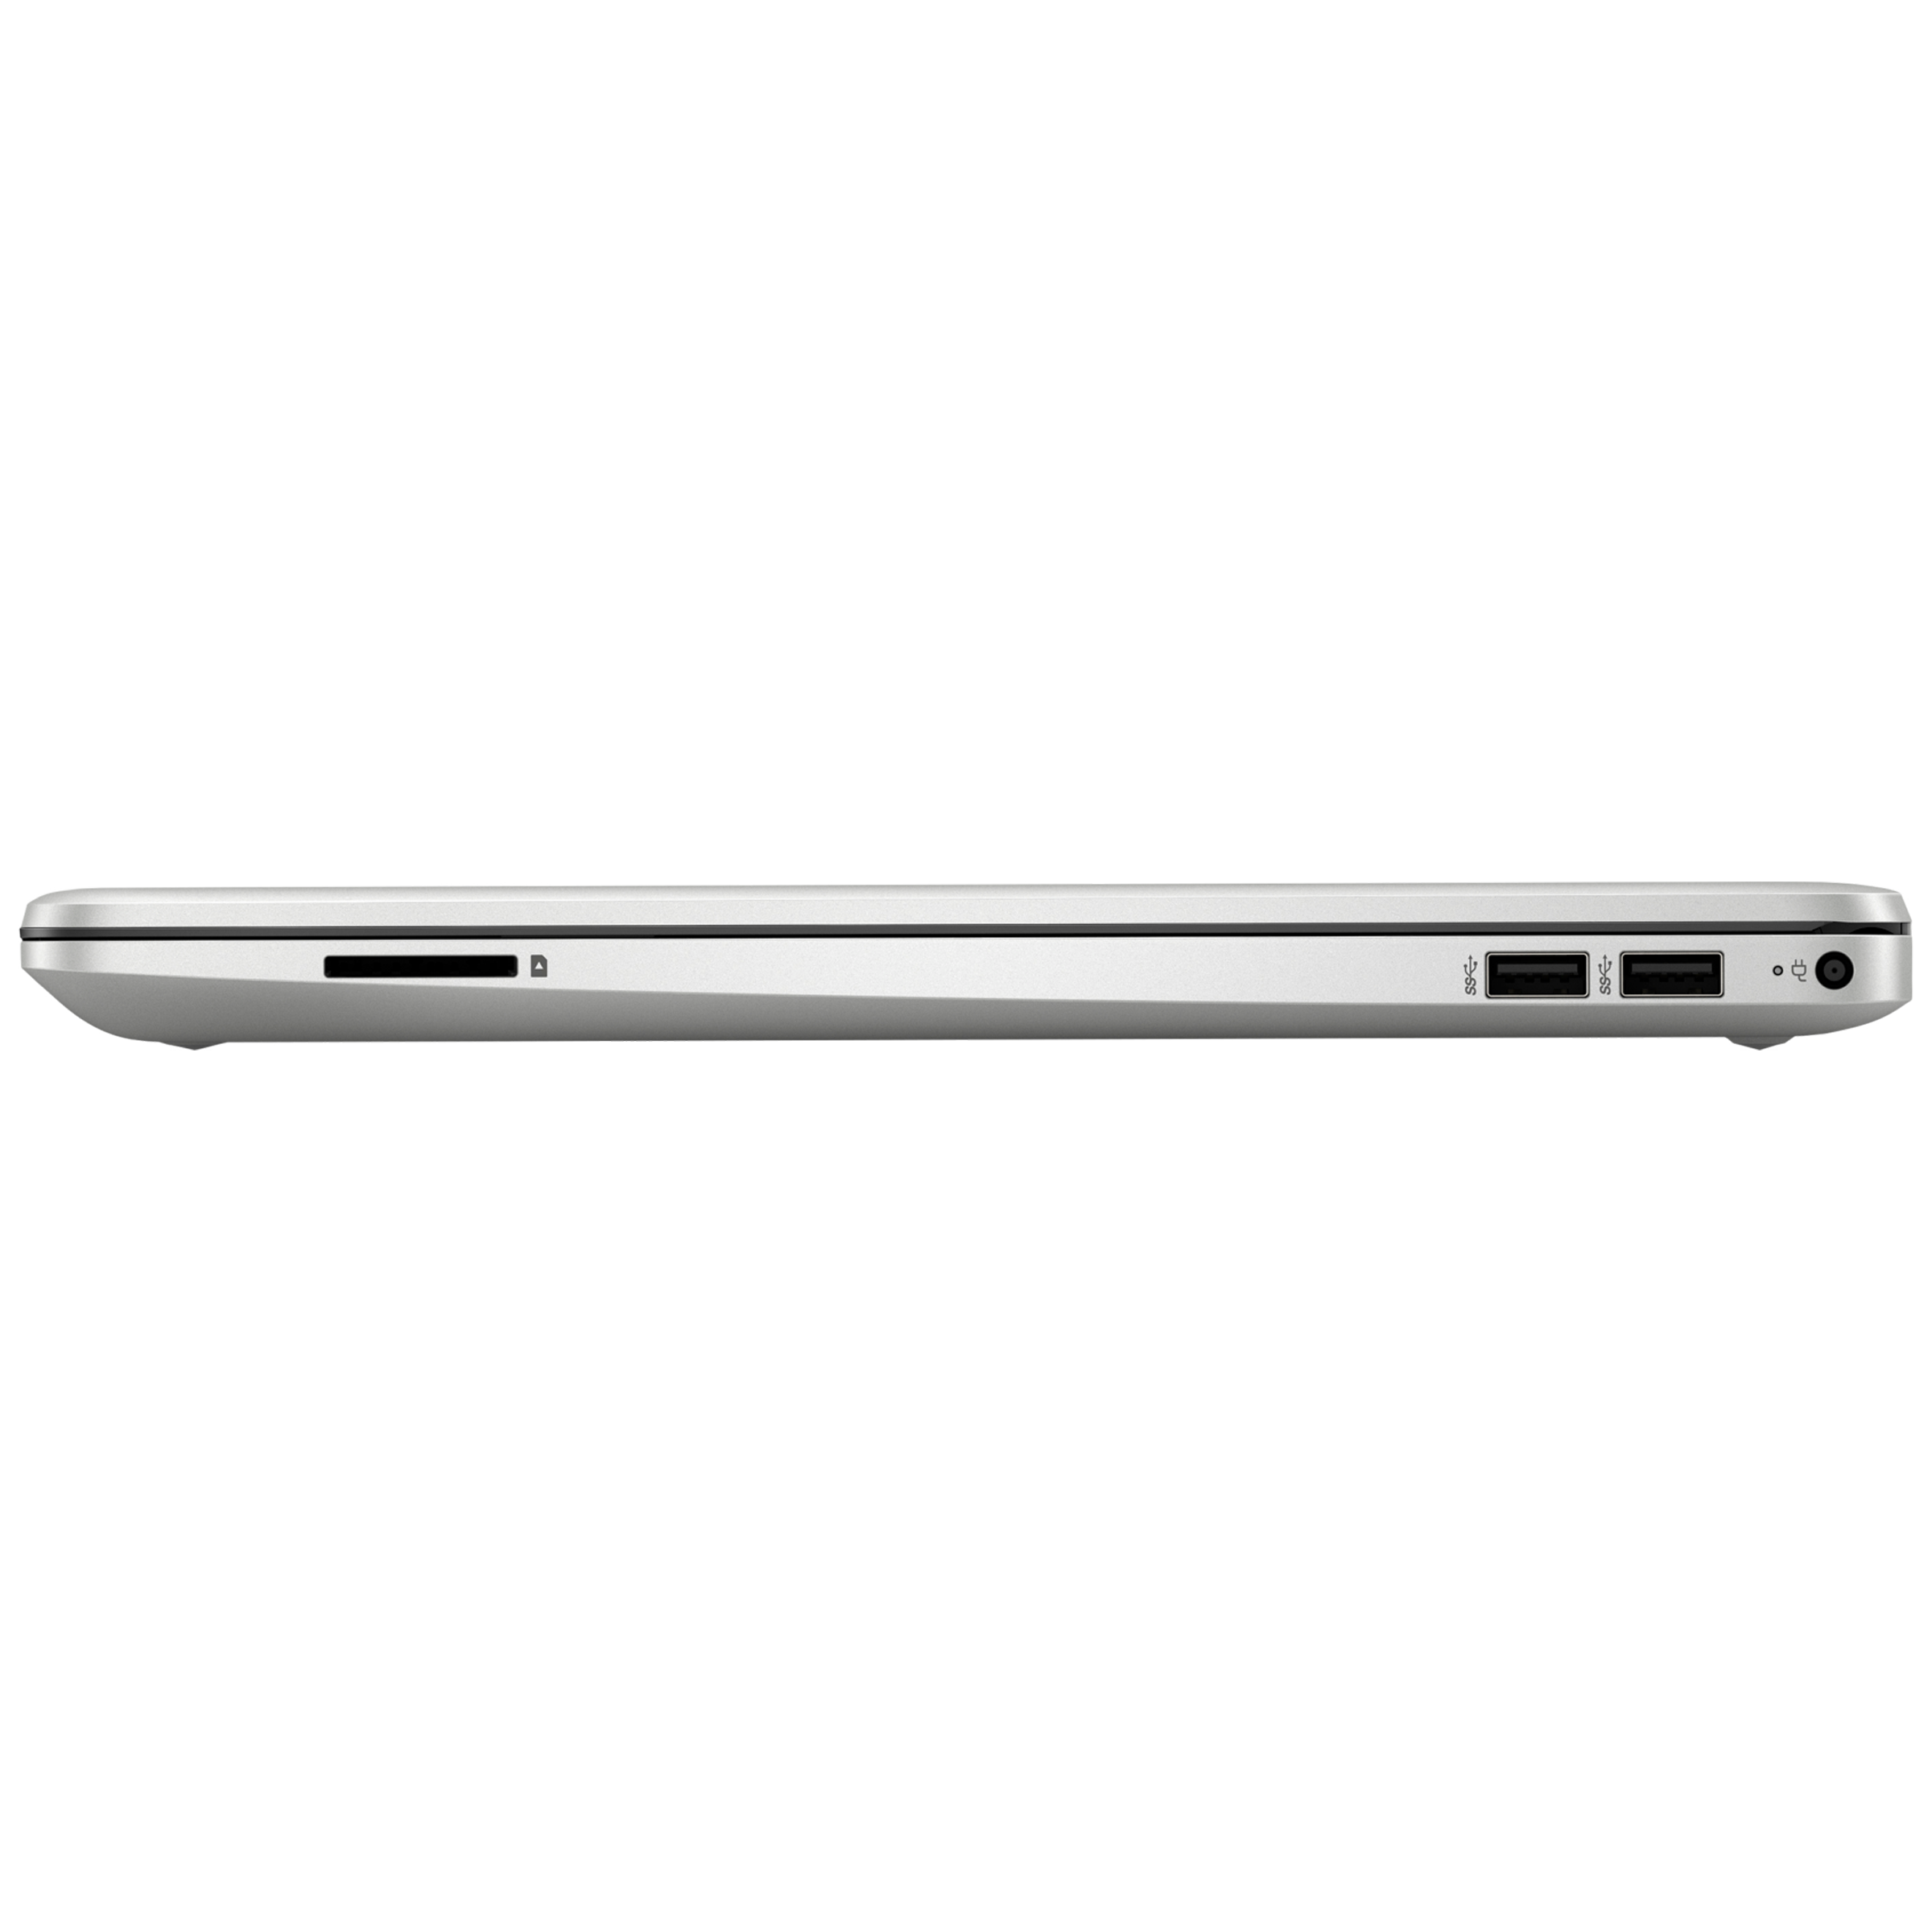 HP 15s-dr3001TU (34W43PA#ACJ) Core i3 11th Gen Windows 10 Home Thin and Light Laptop (8GB RAM, 1TB HDD, Intel UHD Graphics, 39.6cm, Natural Silver) 7